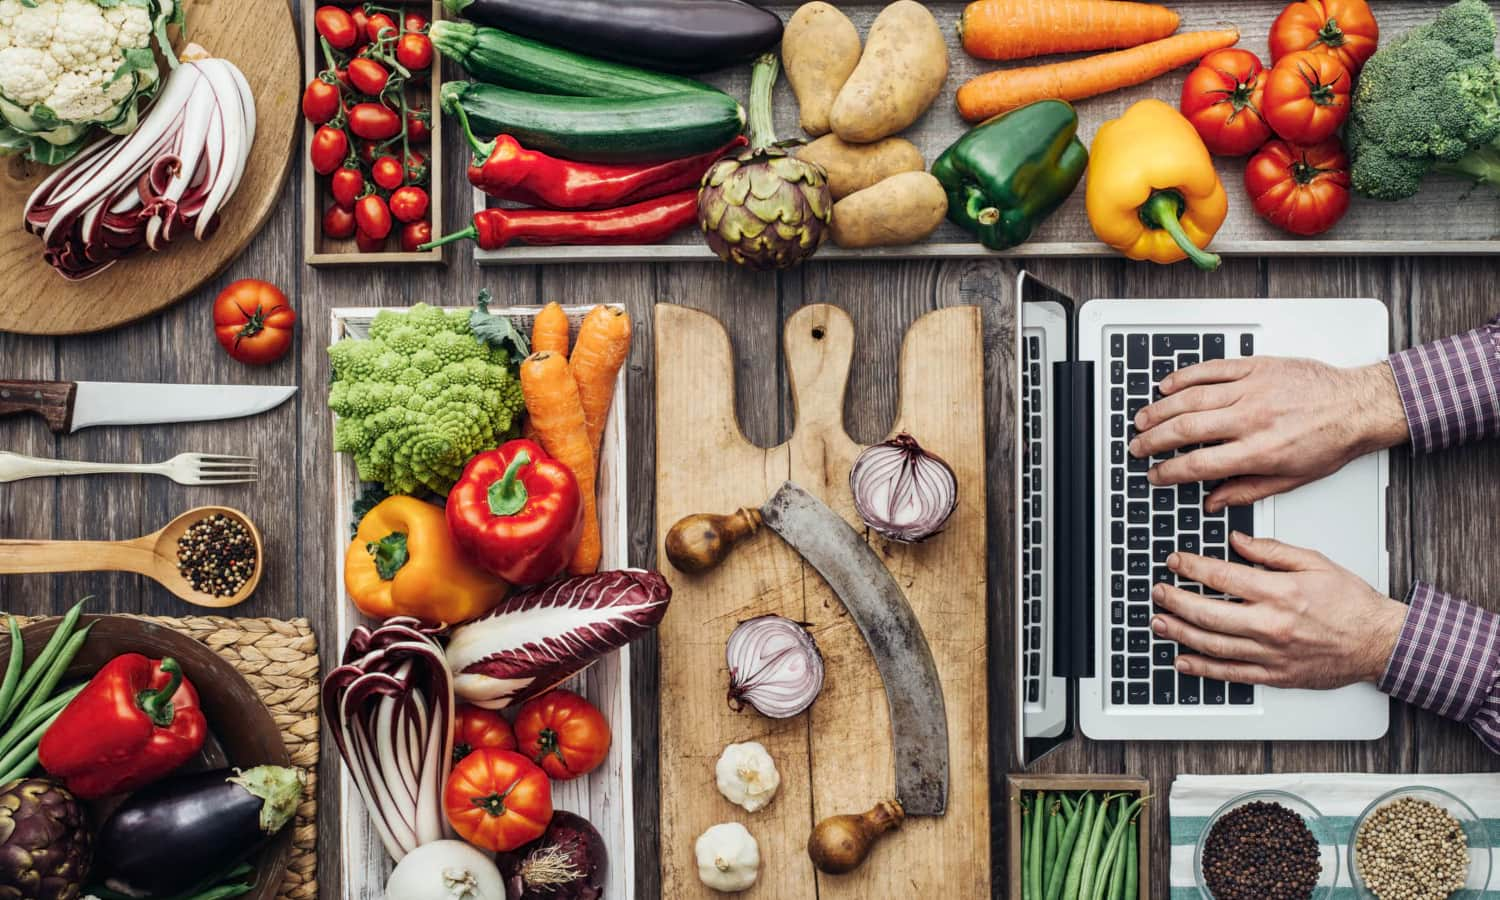 Use your food to its fullest potential. By using the often-forgotten peels, stems, leaves, and other parts of an ingredient, you can waste less and taste more. Food Tank gives 11 tips for maximizing what you buy at the grocery store.